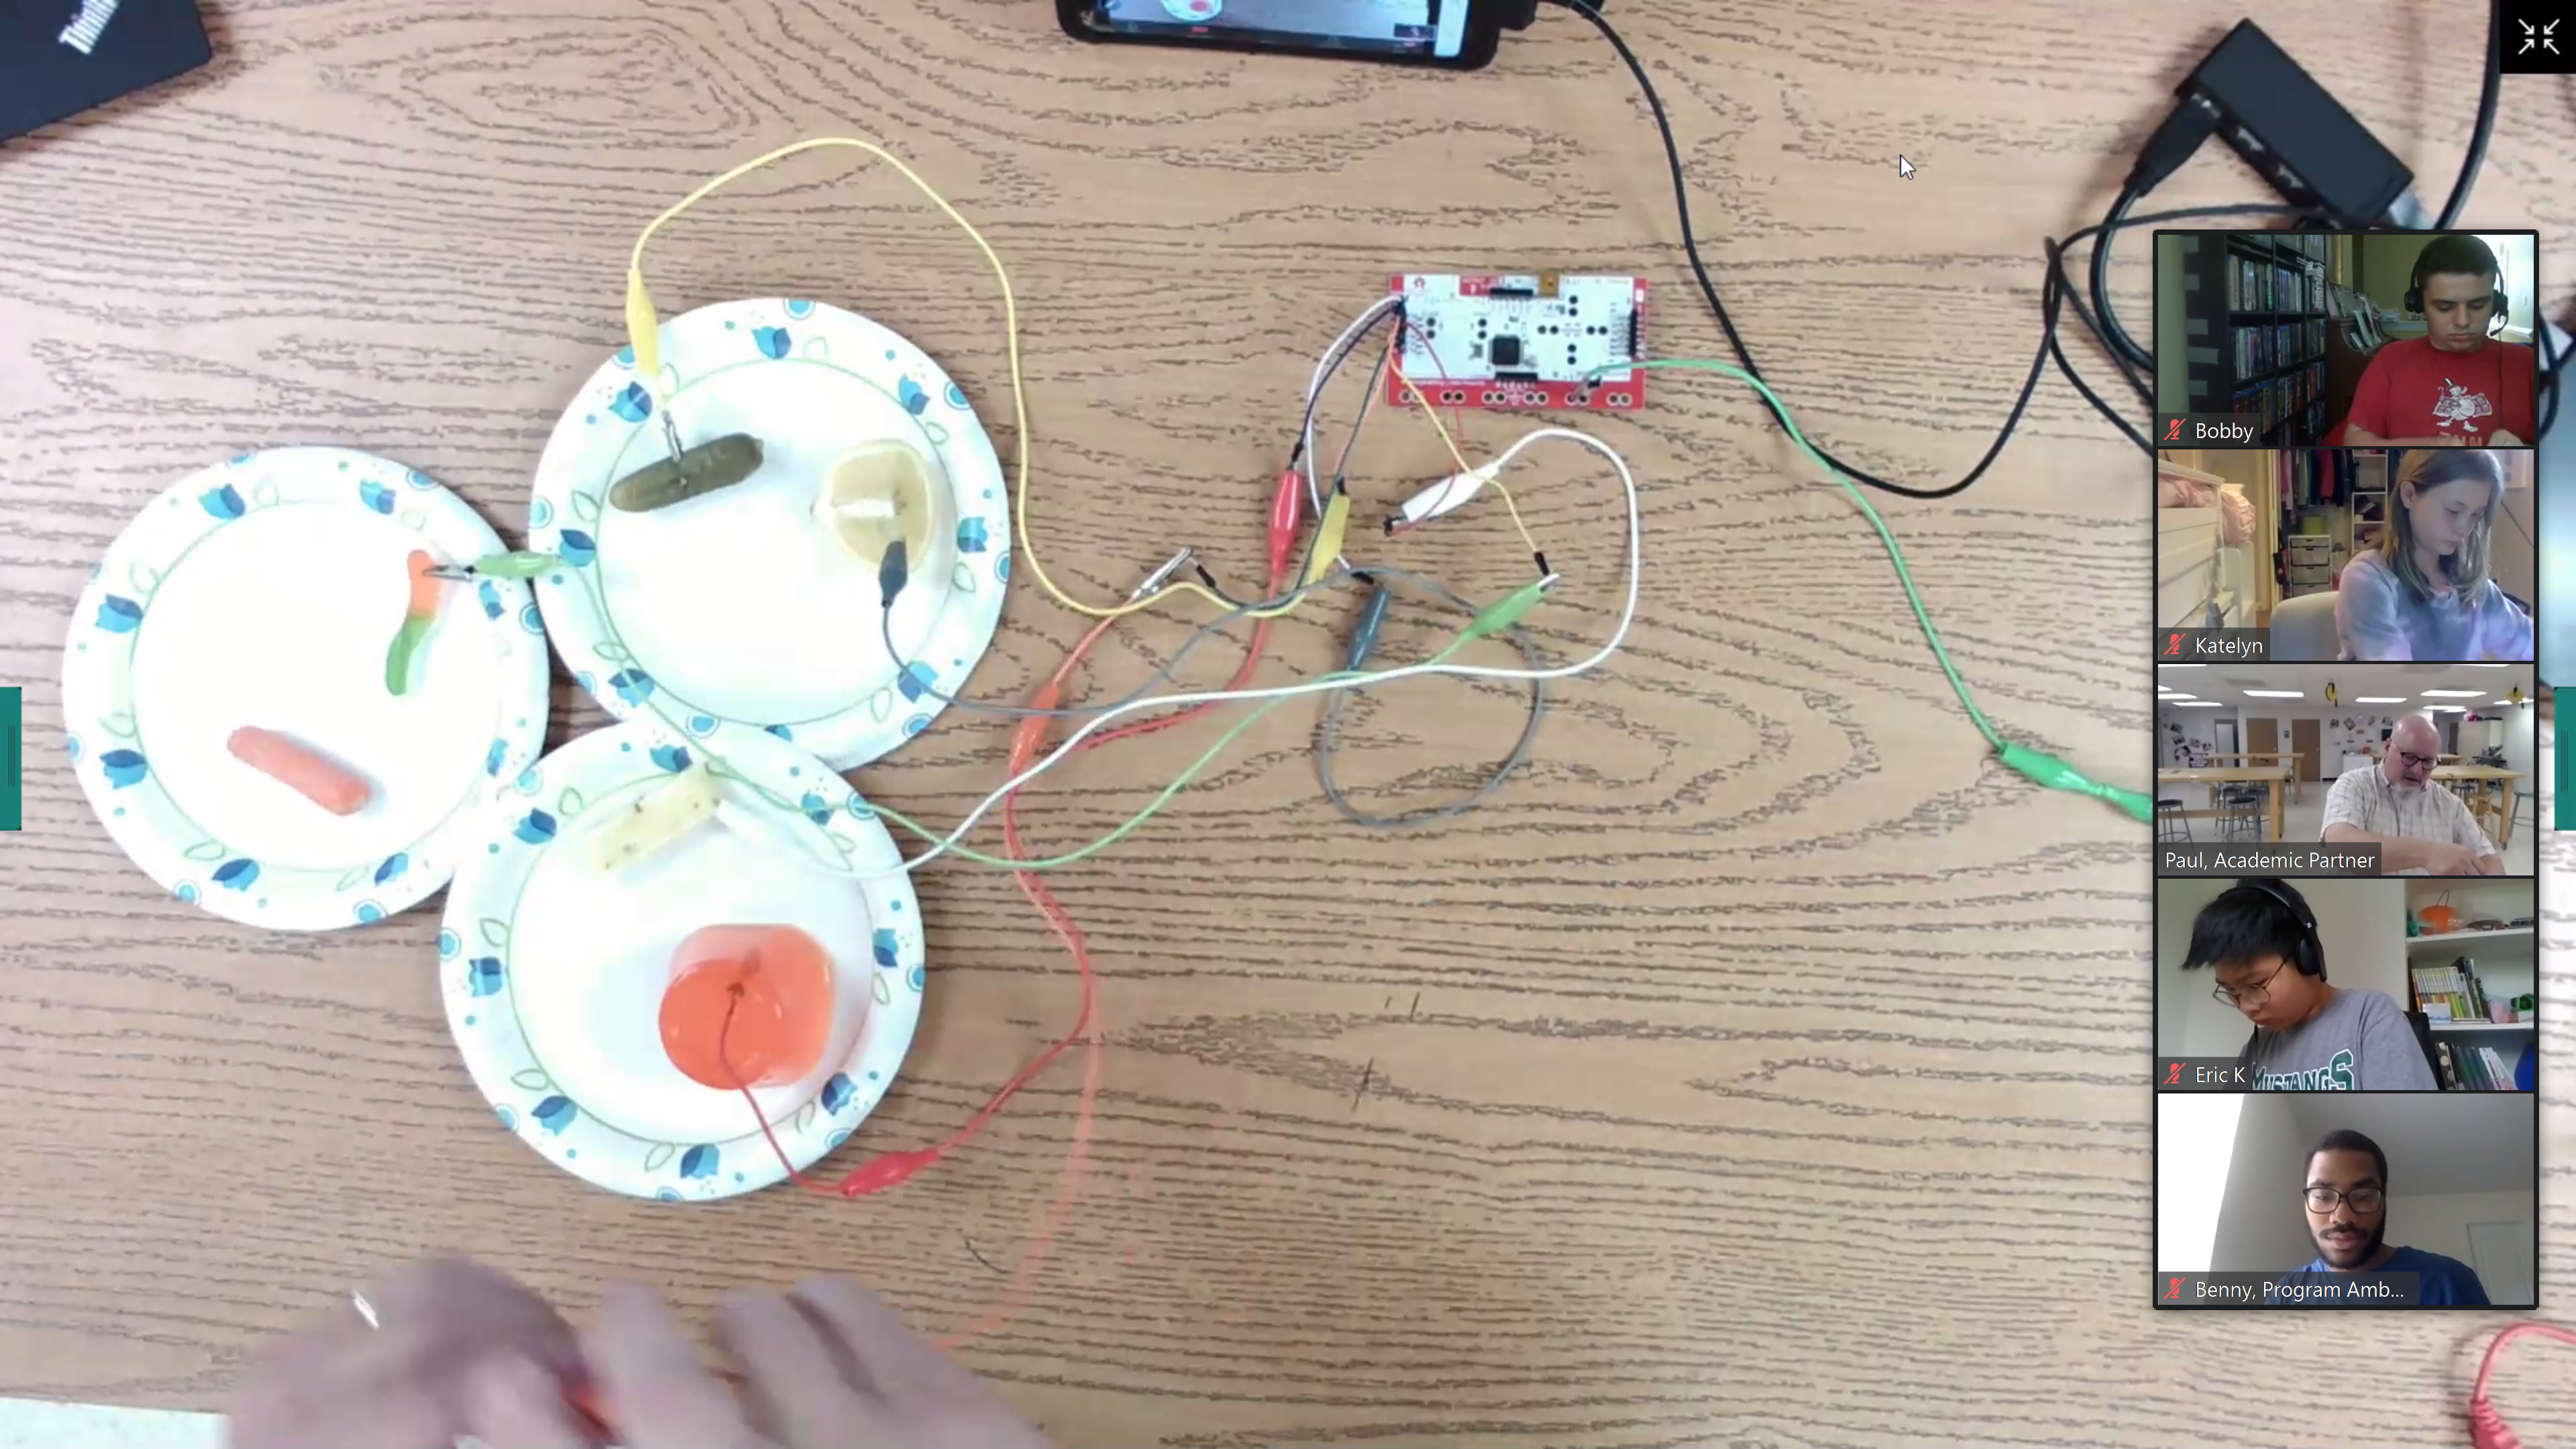 Makey Makey Lab in Which Students Learned About Energy and How You Can Power a Circuit with Items like Jello